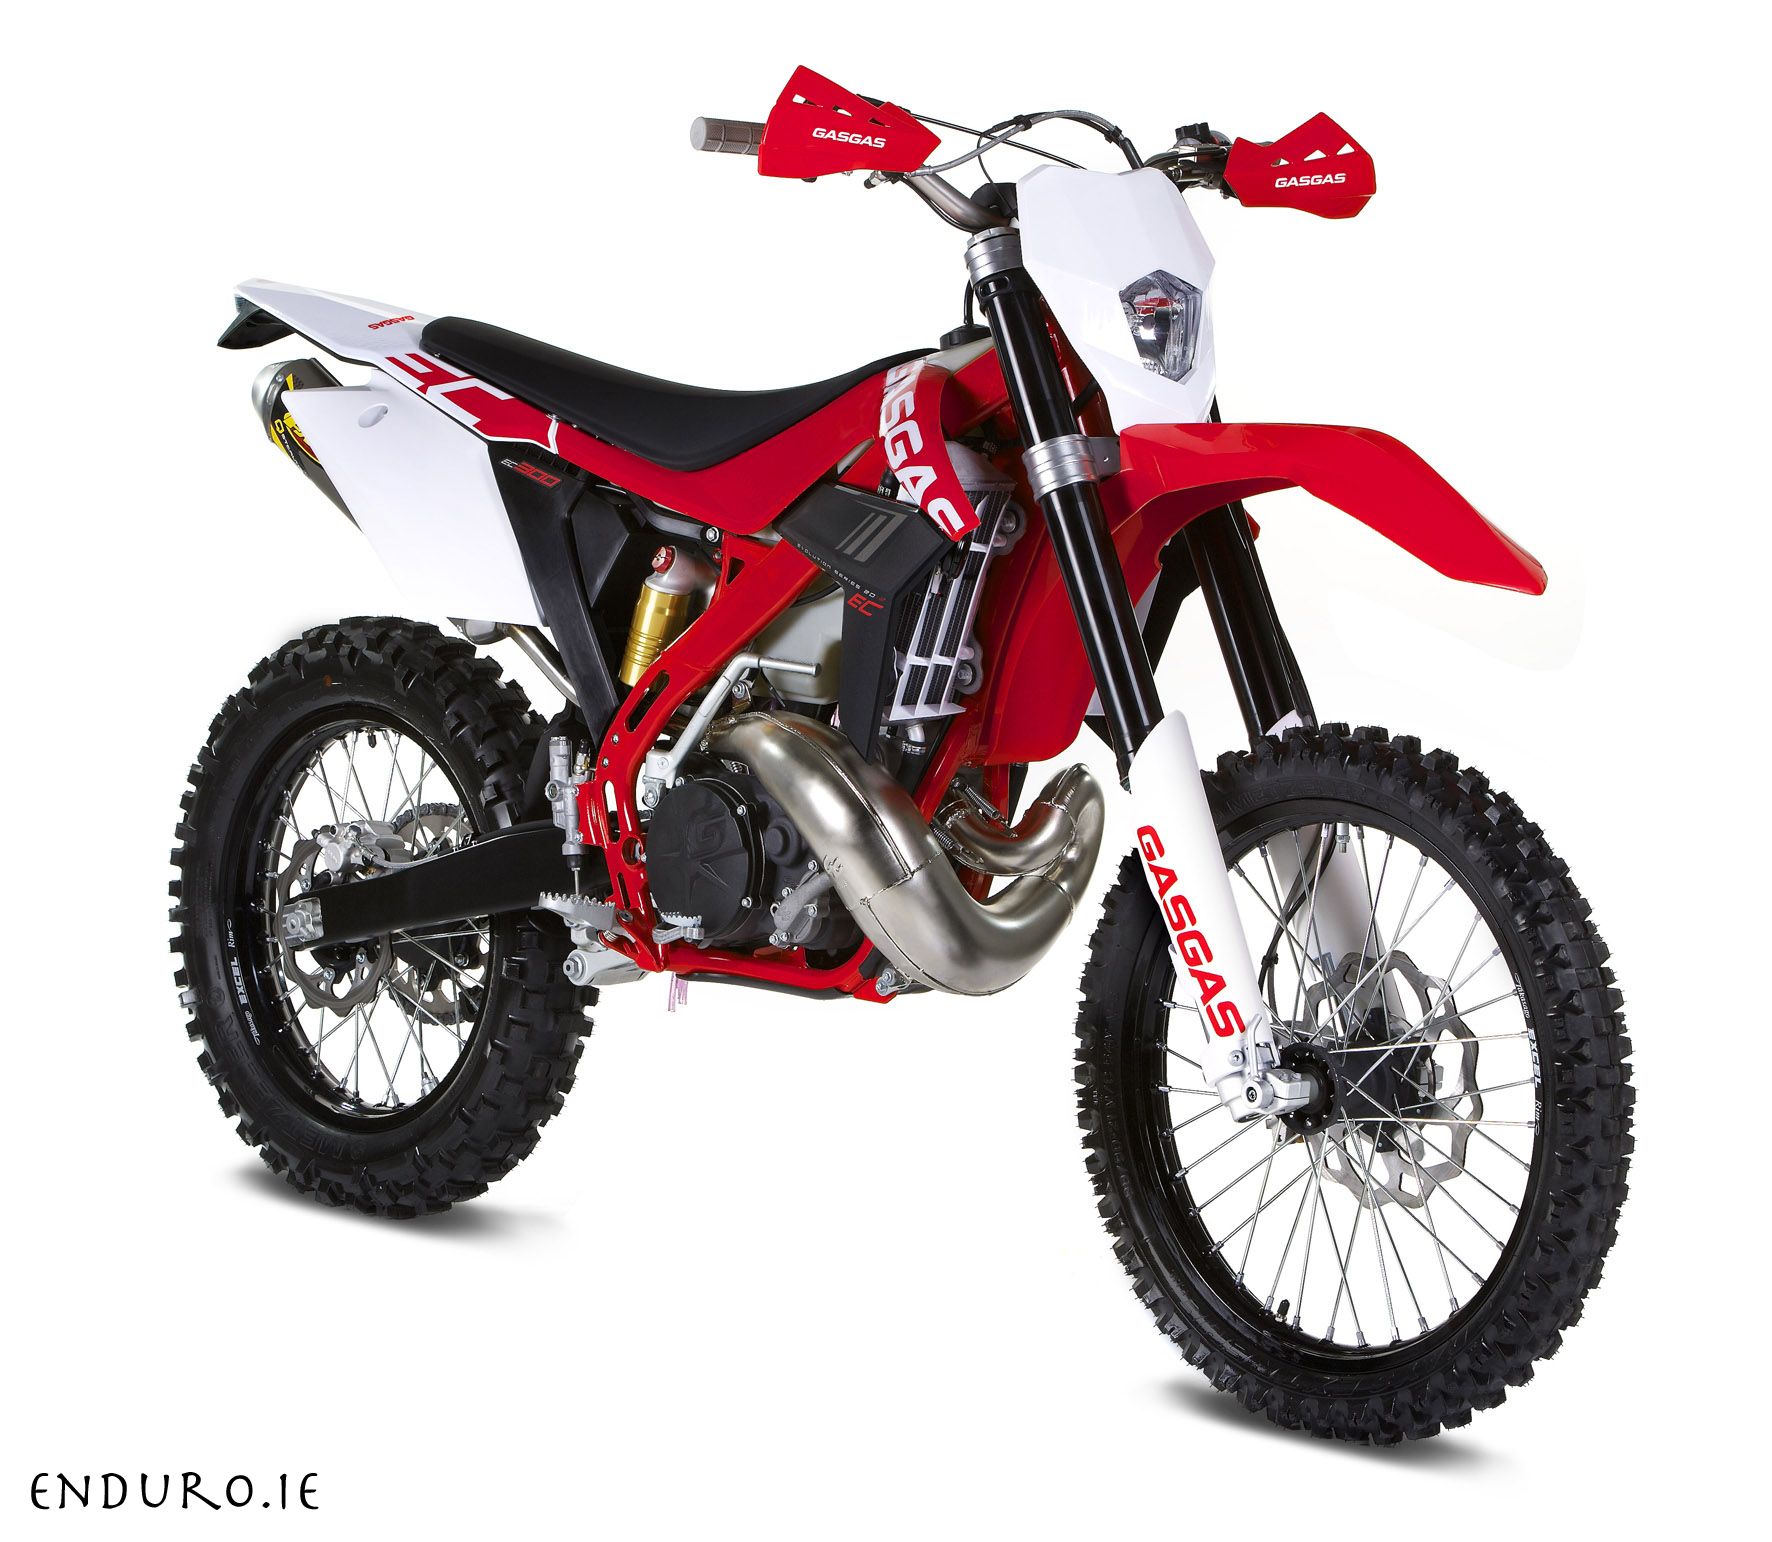 CCM 404DS Dualsport Moto 2004 images #68214